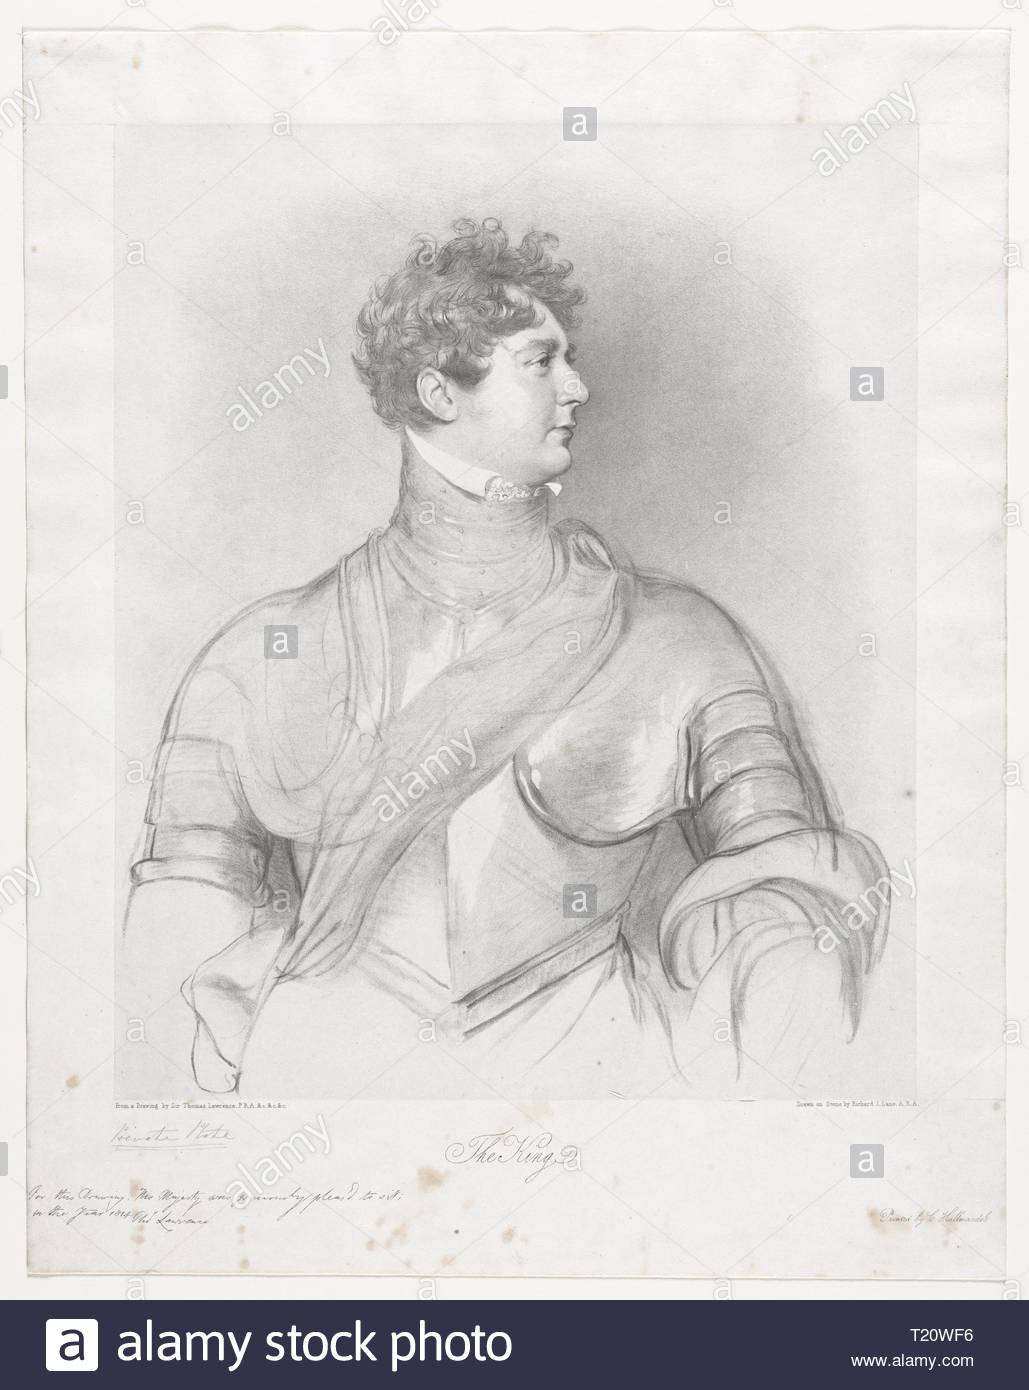 The King, George IV of Great Britain. Richard James Lane (British, 1800-1872). Lithograph. - Stock Image